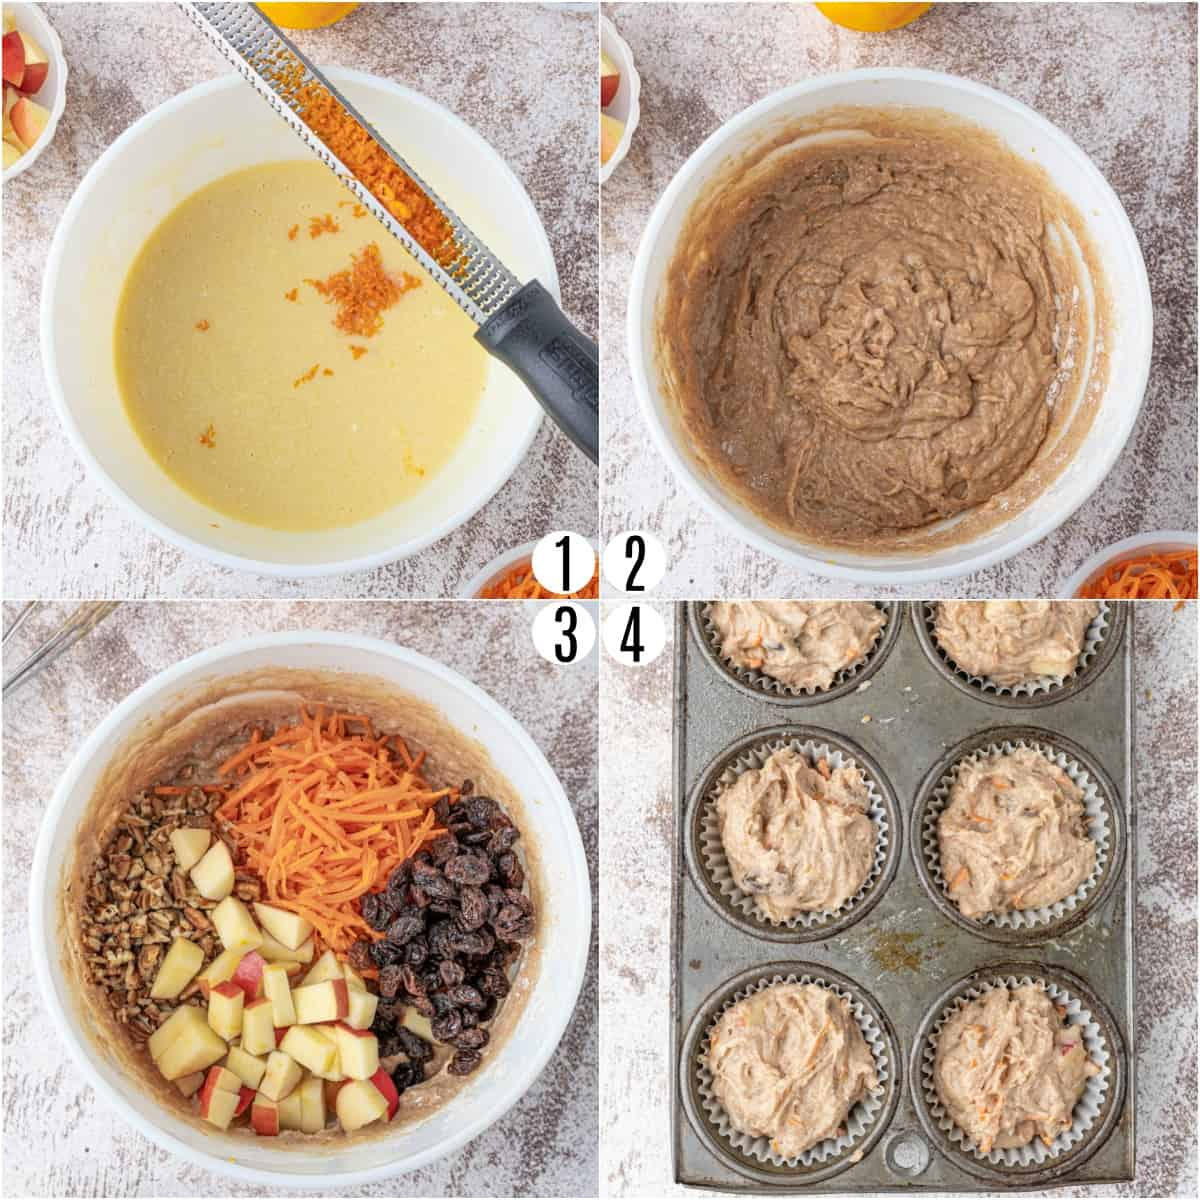 Step by step photos showing how to make morning glory muffins.